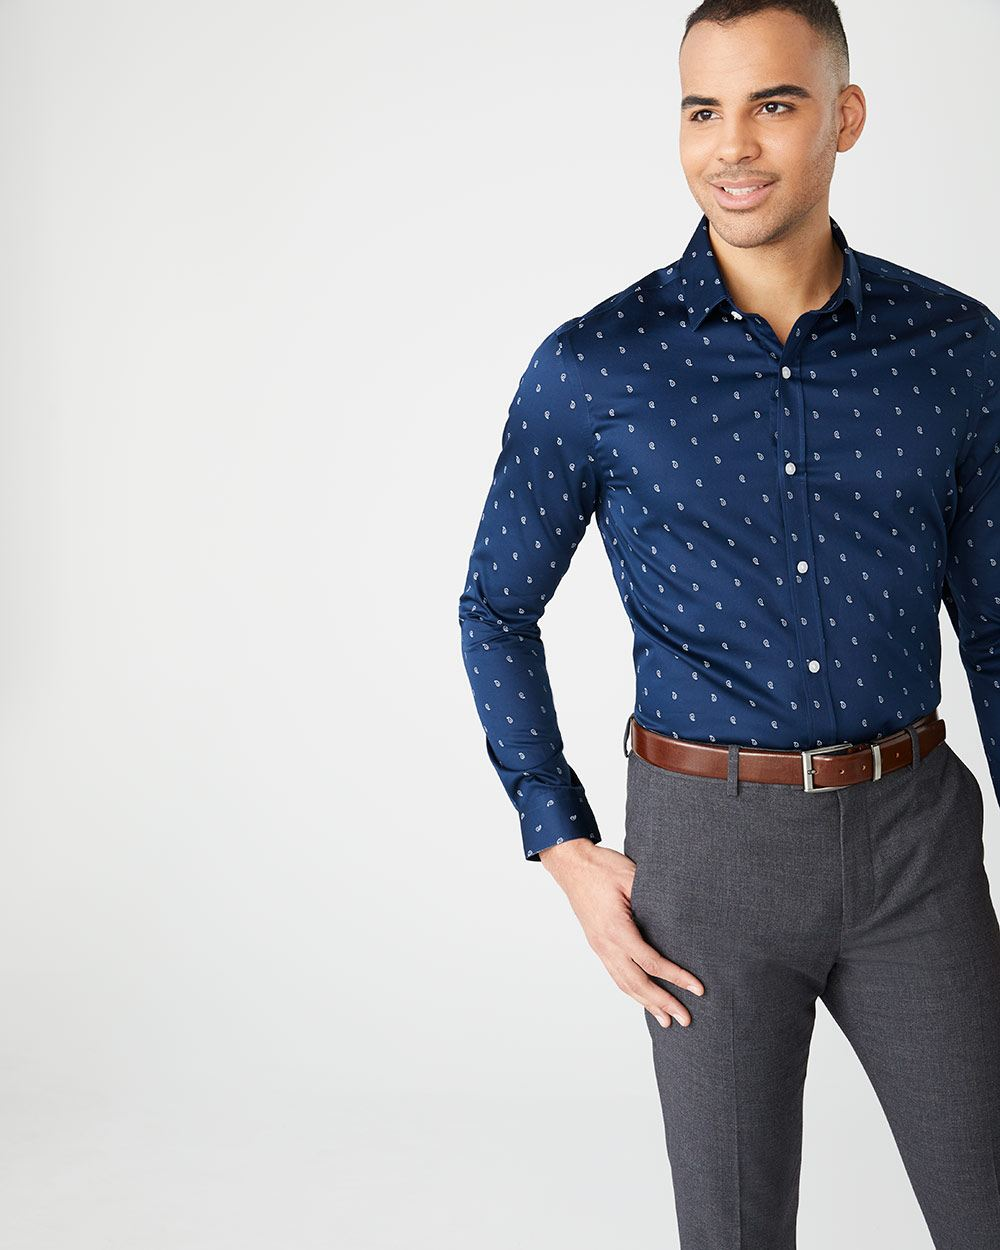 Athletic Fit navy paisley dress shirt